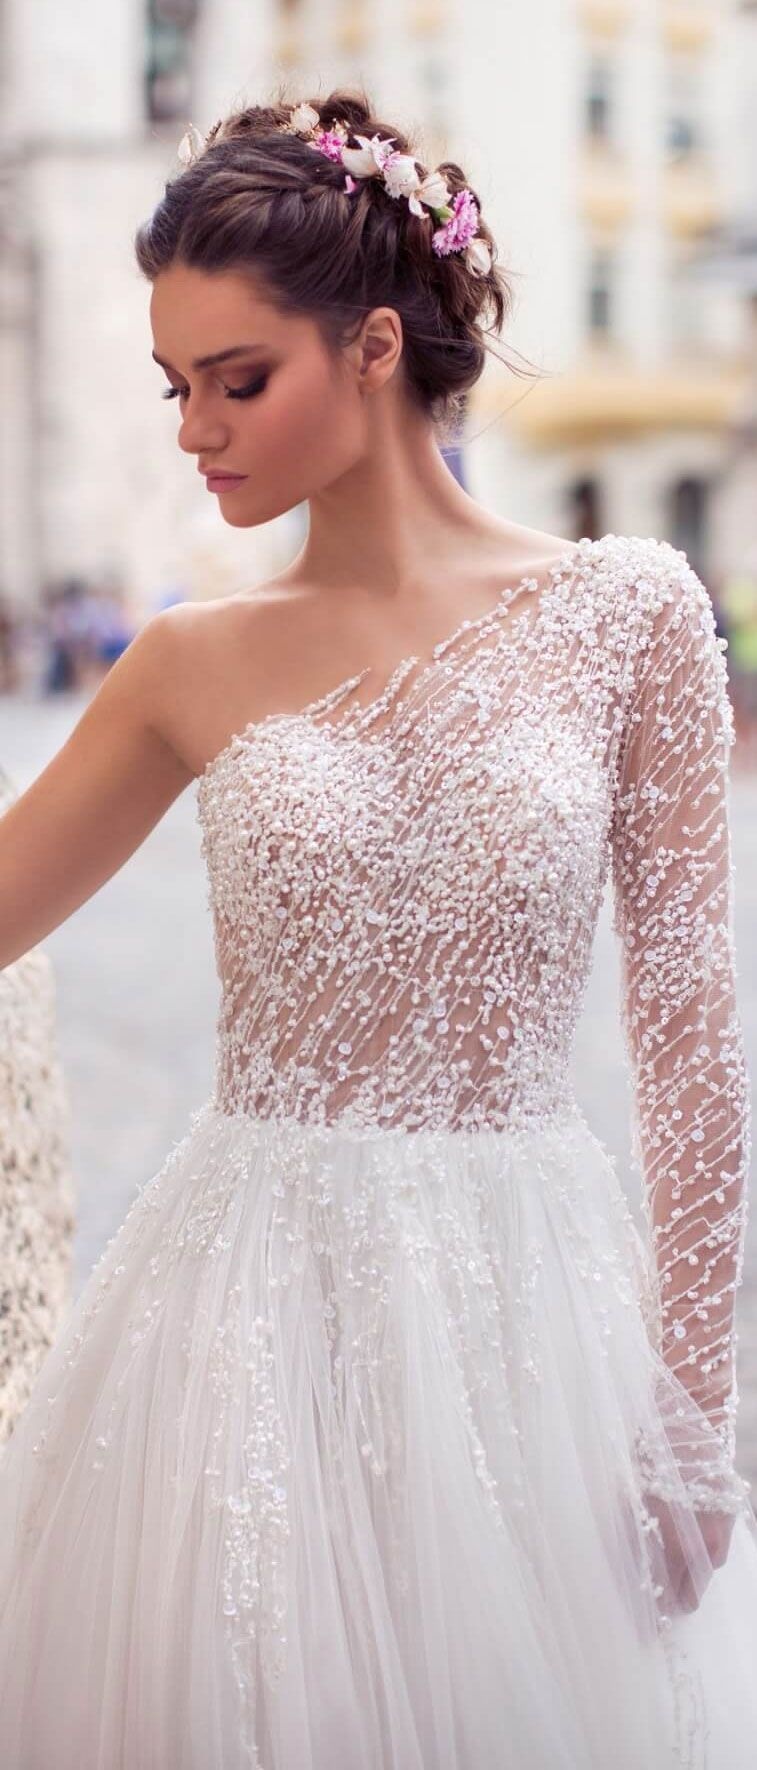 2020 Wedding Dresses Fancy Dress For Girls Long Sleeve Lace Bridesmaid Dress Tswana Traditional Dresses 2018 Buy Dresses Online